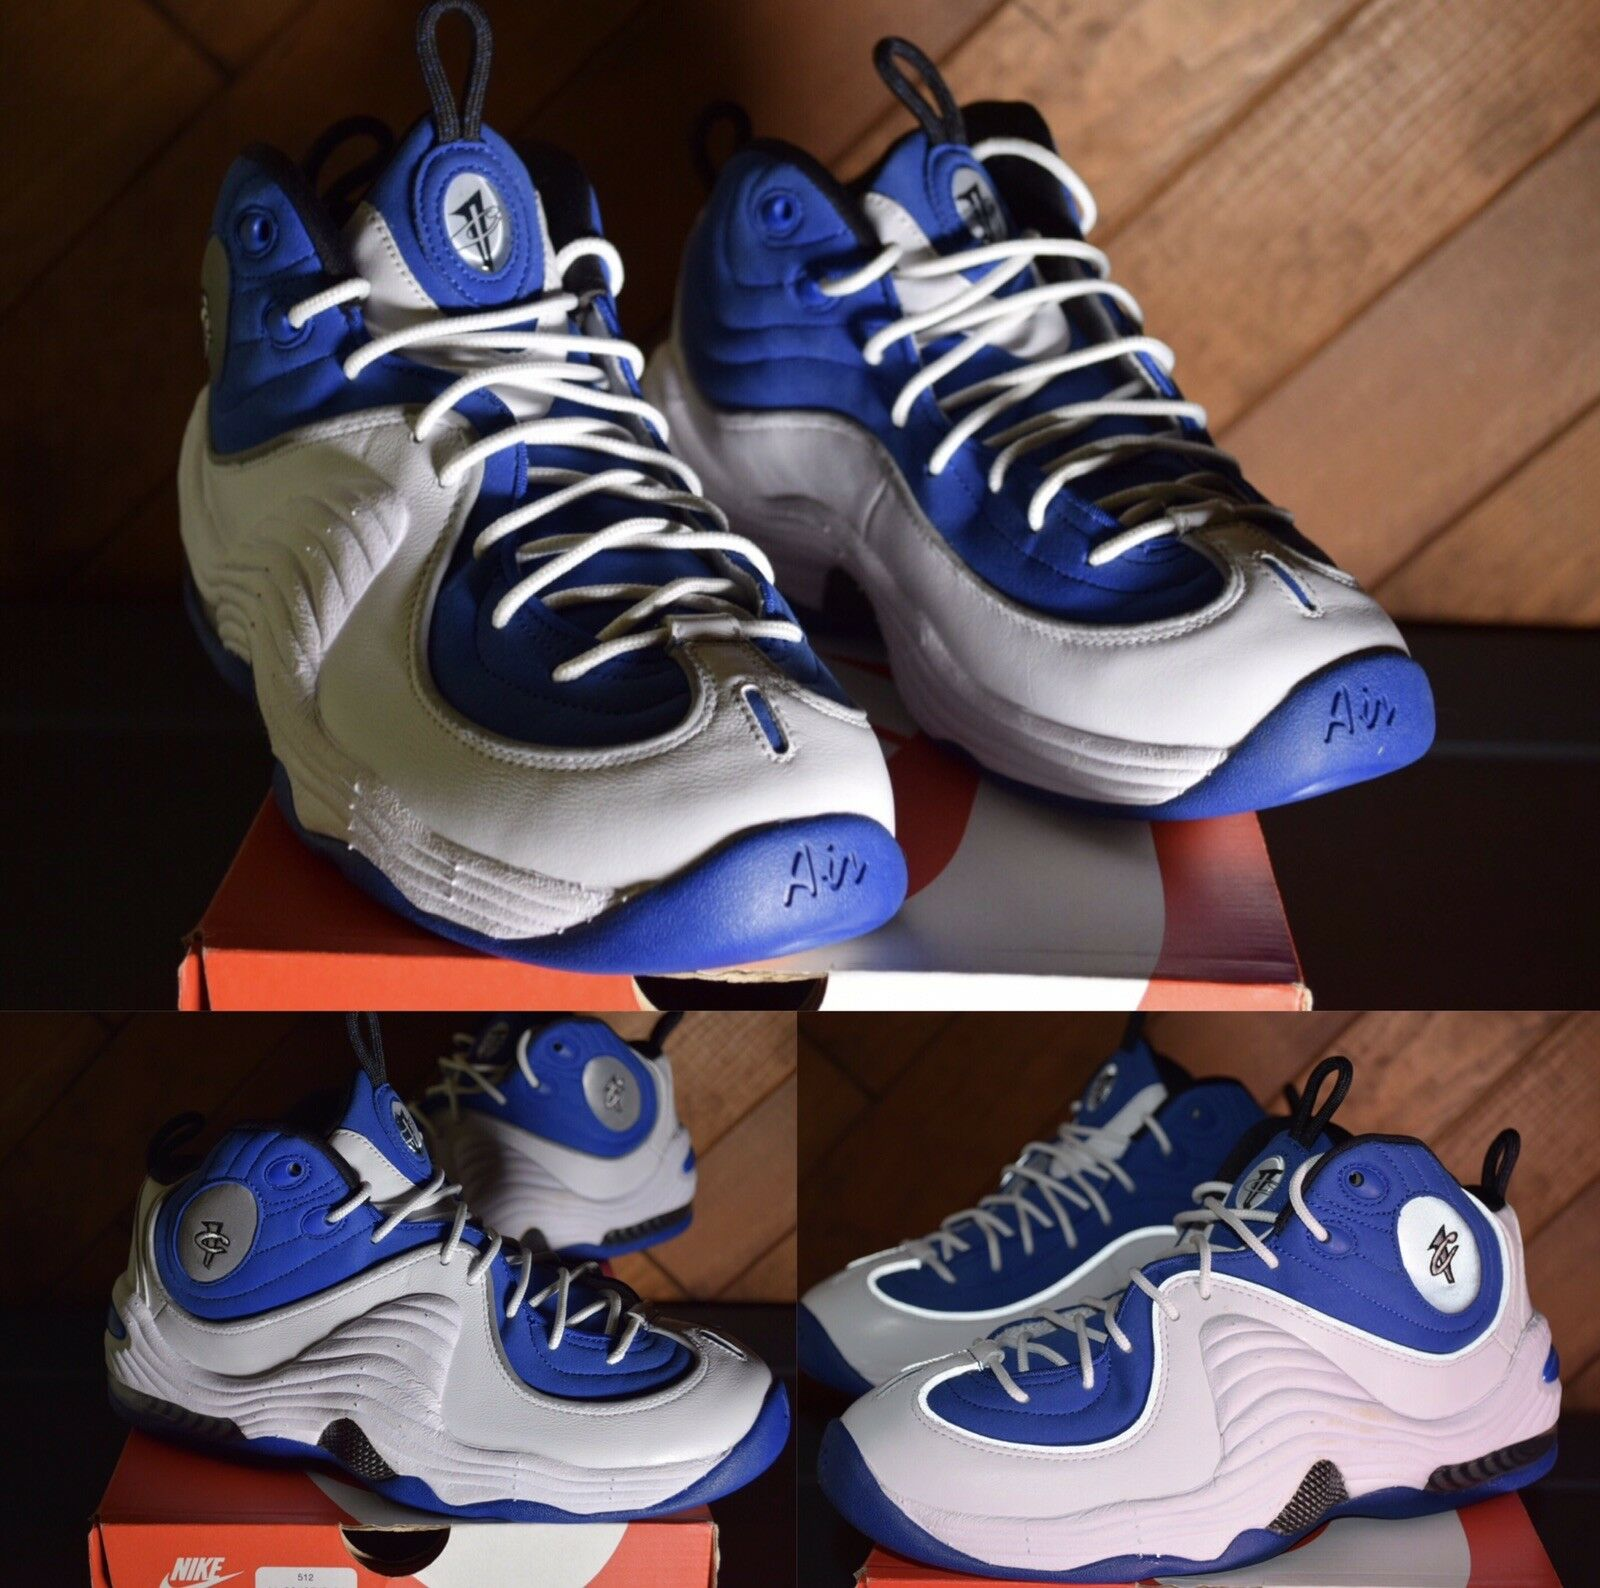 2015 Nike Air Penny 2 II Atlantic 'College bluee' 333886-400, Size 8